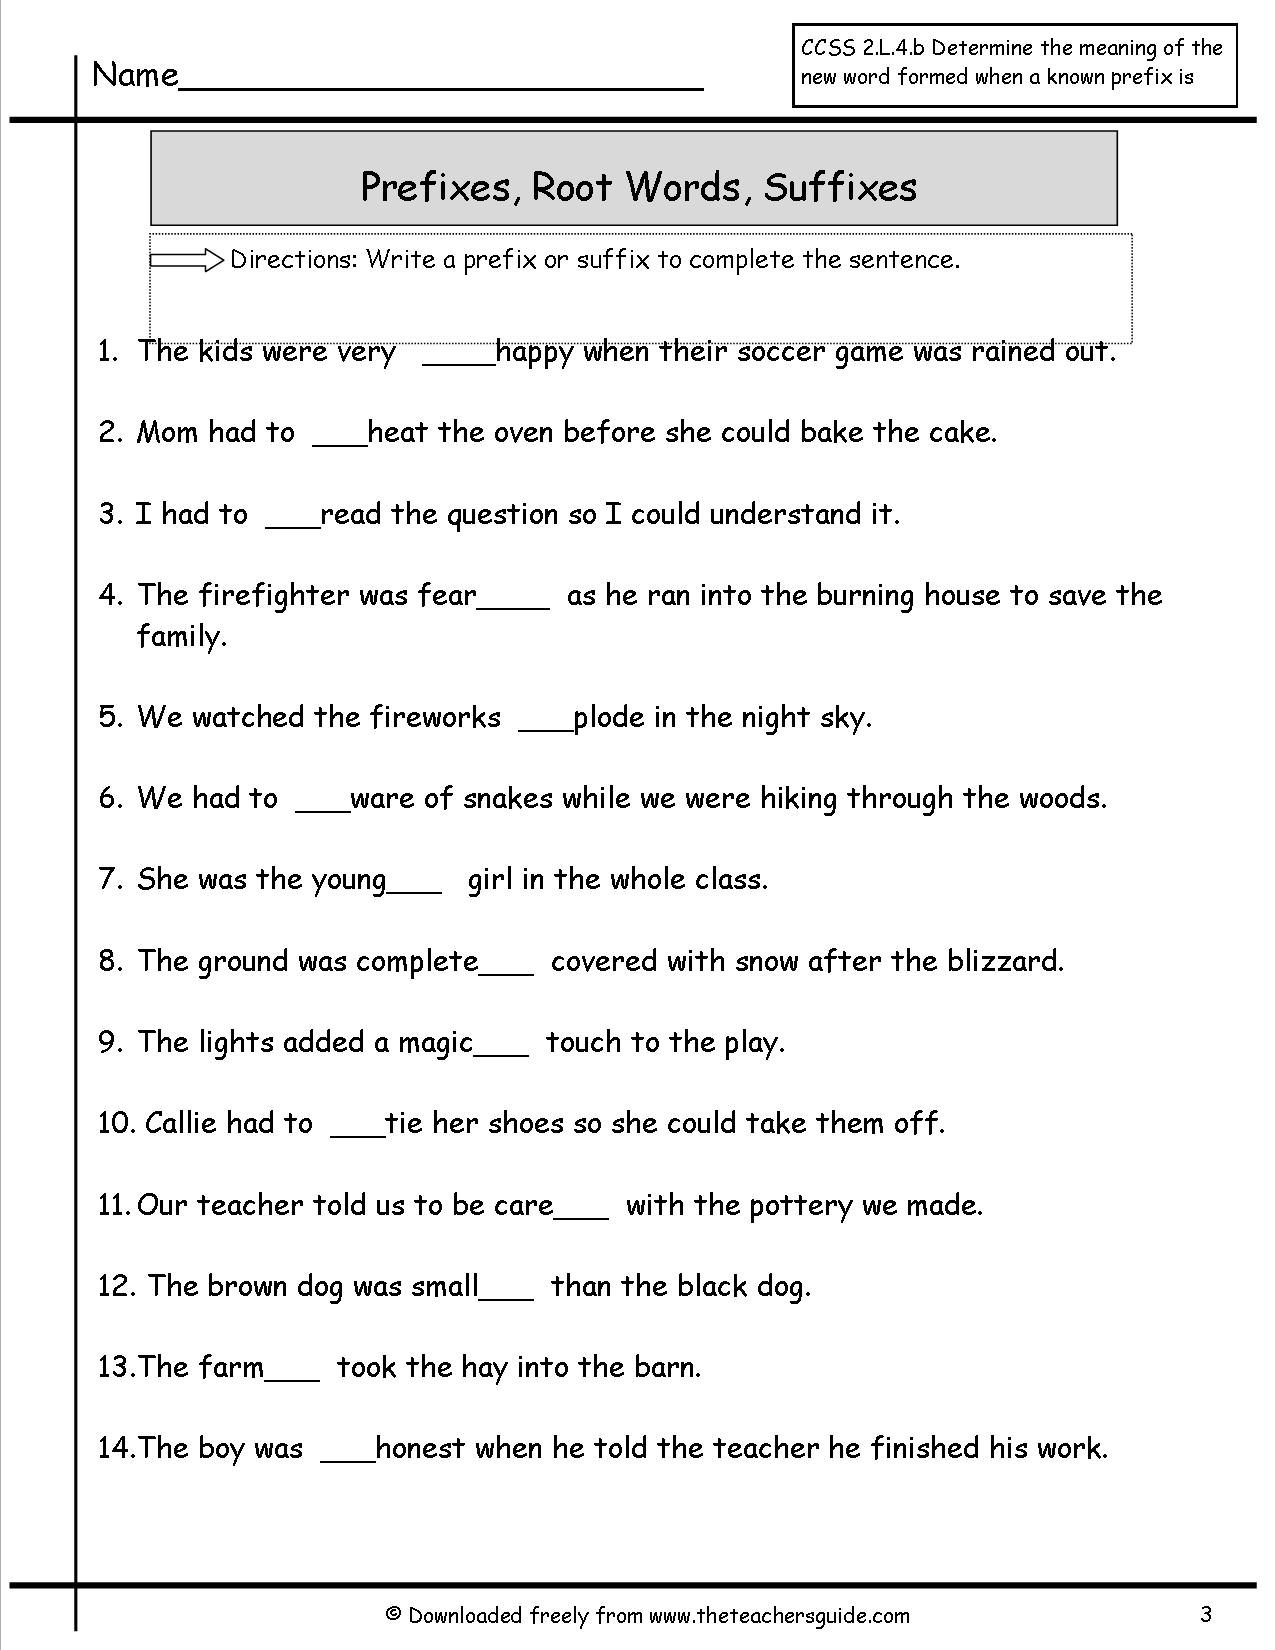 14 Best Images Of Prefixes Suffixes Root Words Worksheets